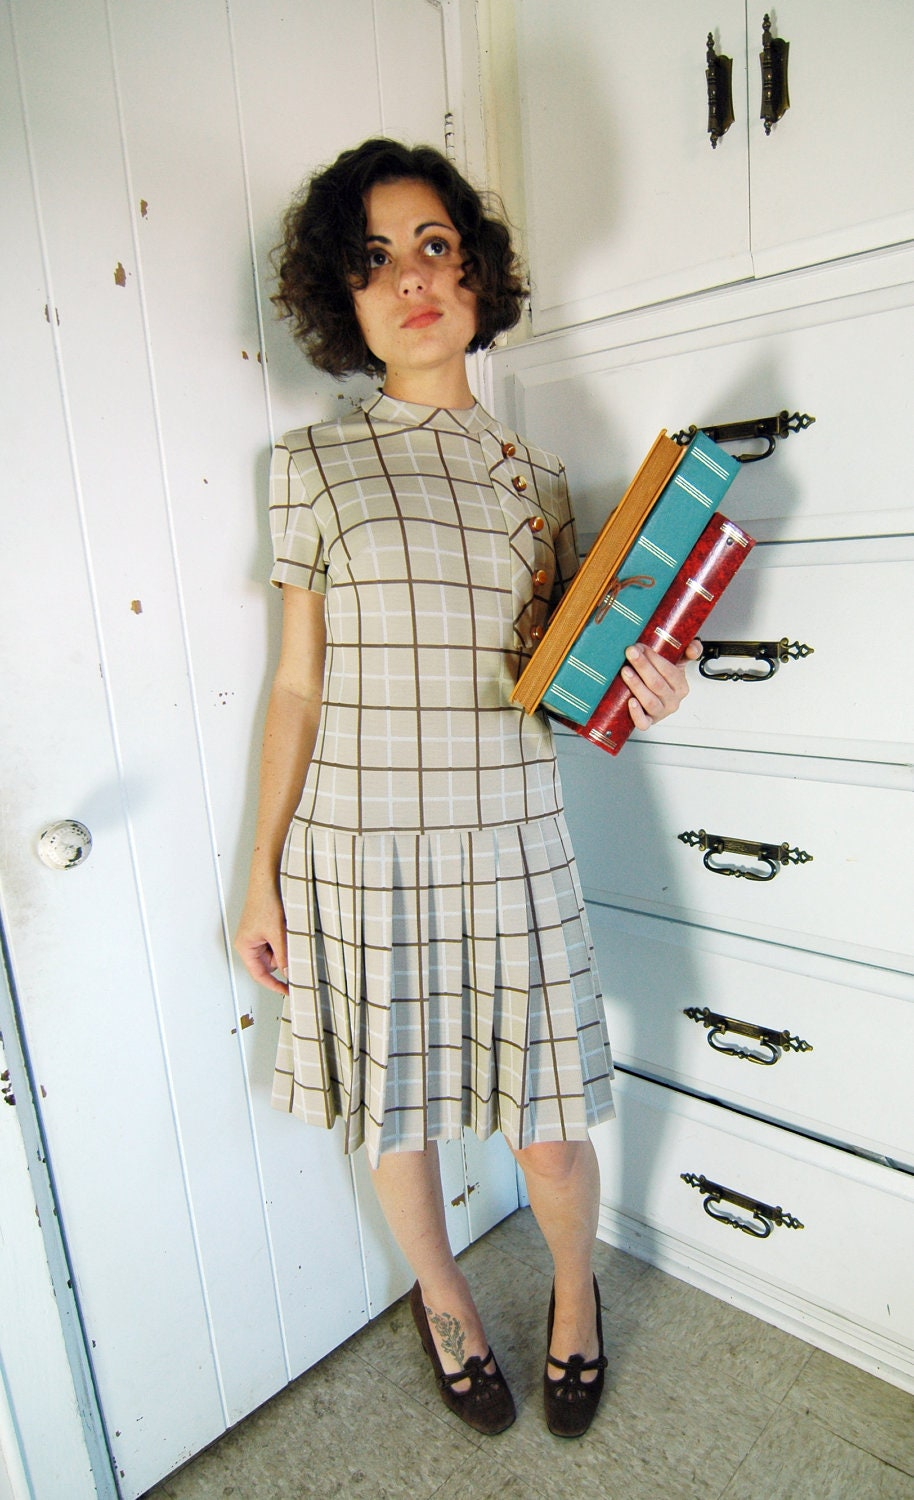 VINTAGE 1960s School Girl Dress - Beige & Brown - Andrea Gayle - MiriamMadlyVintage